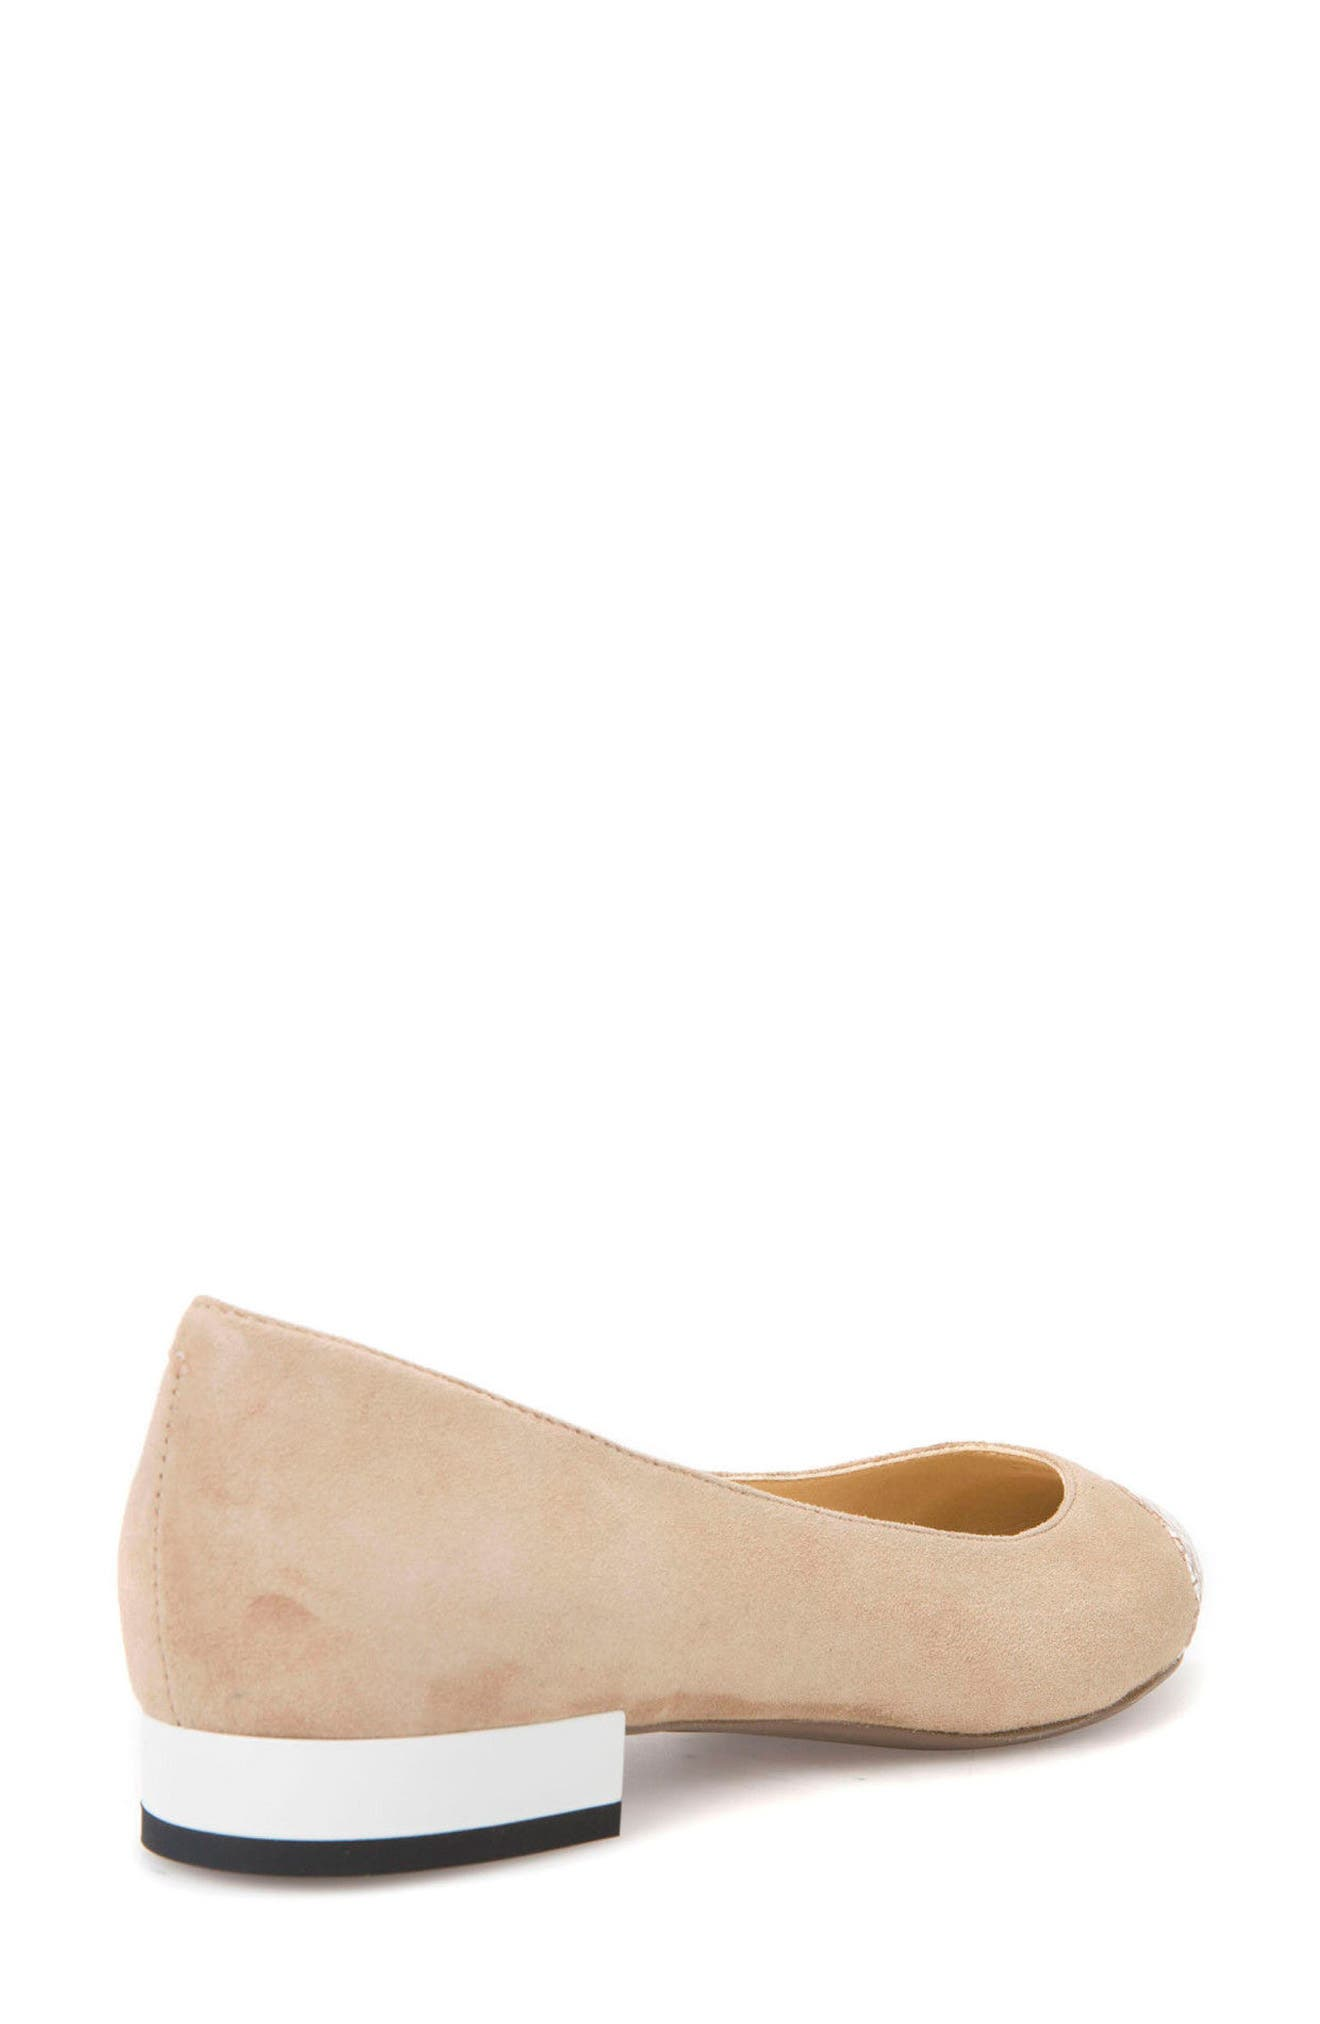 Charyssa Flat,                             Alternate thumbnail 2, color,                             BEIGE LEATHER